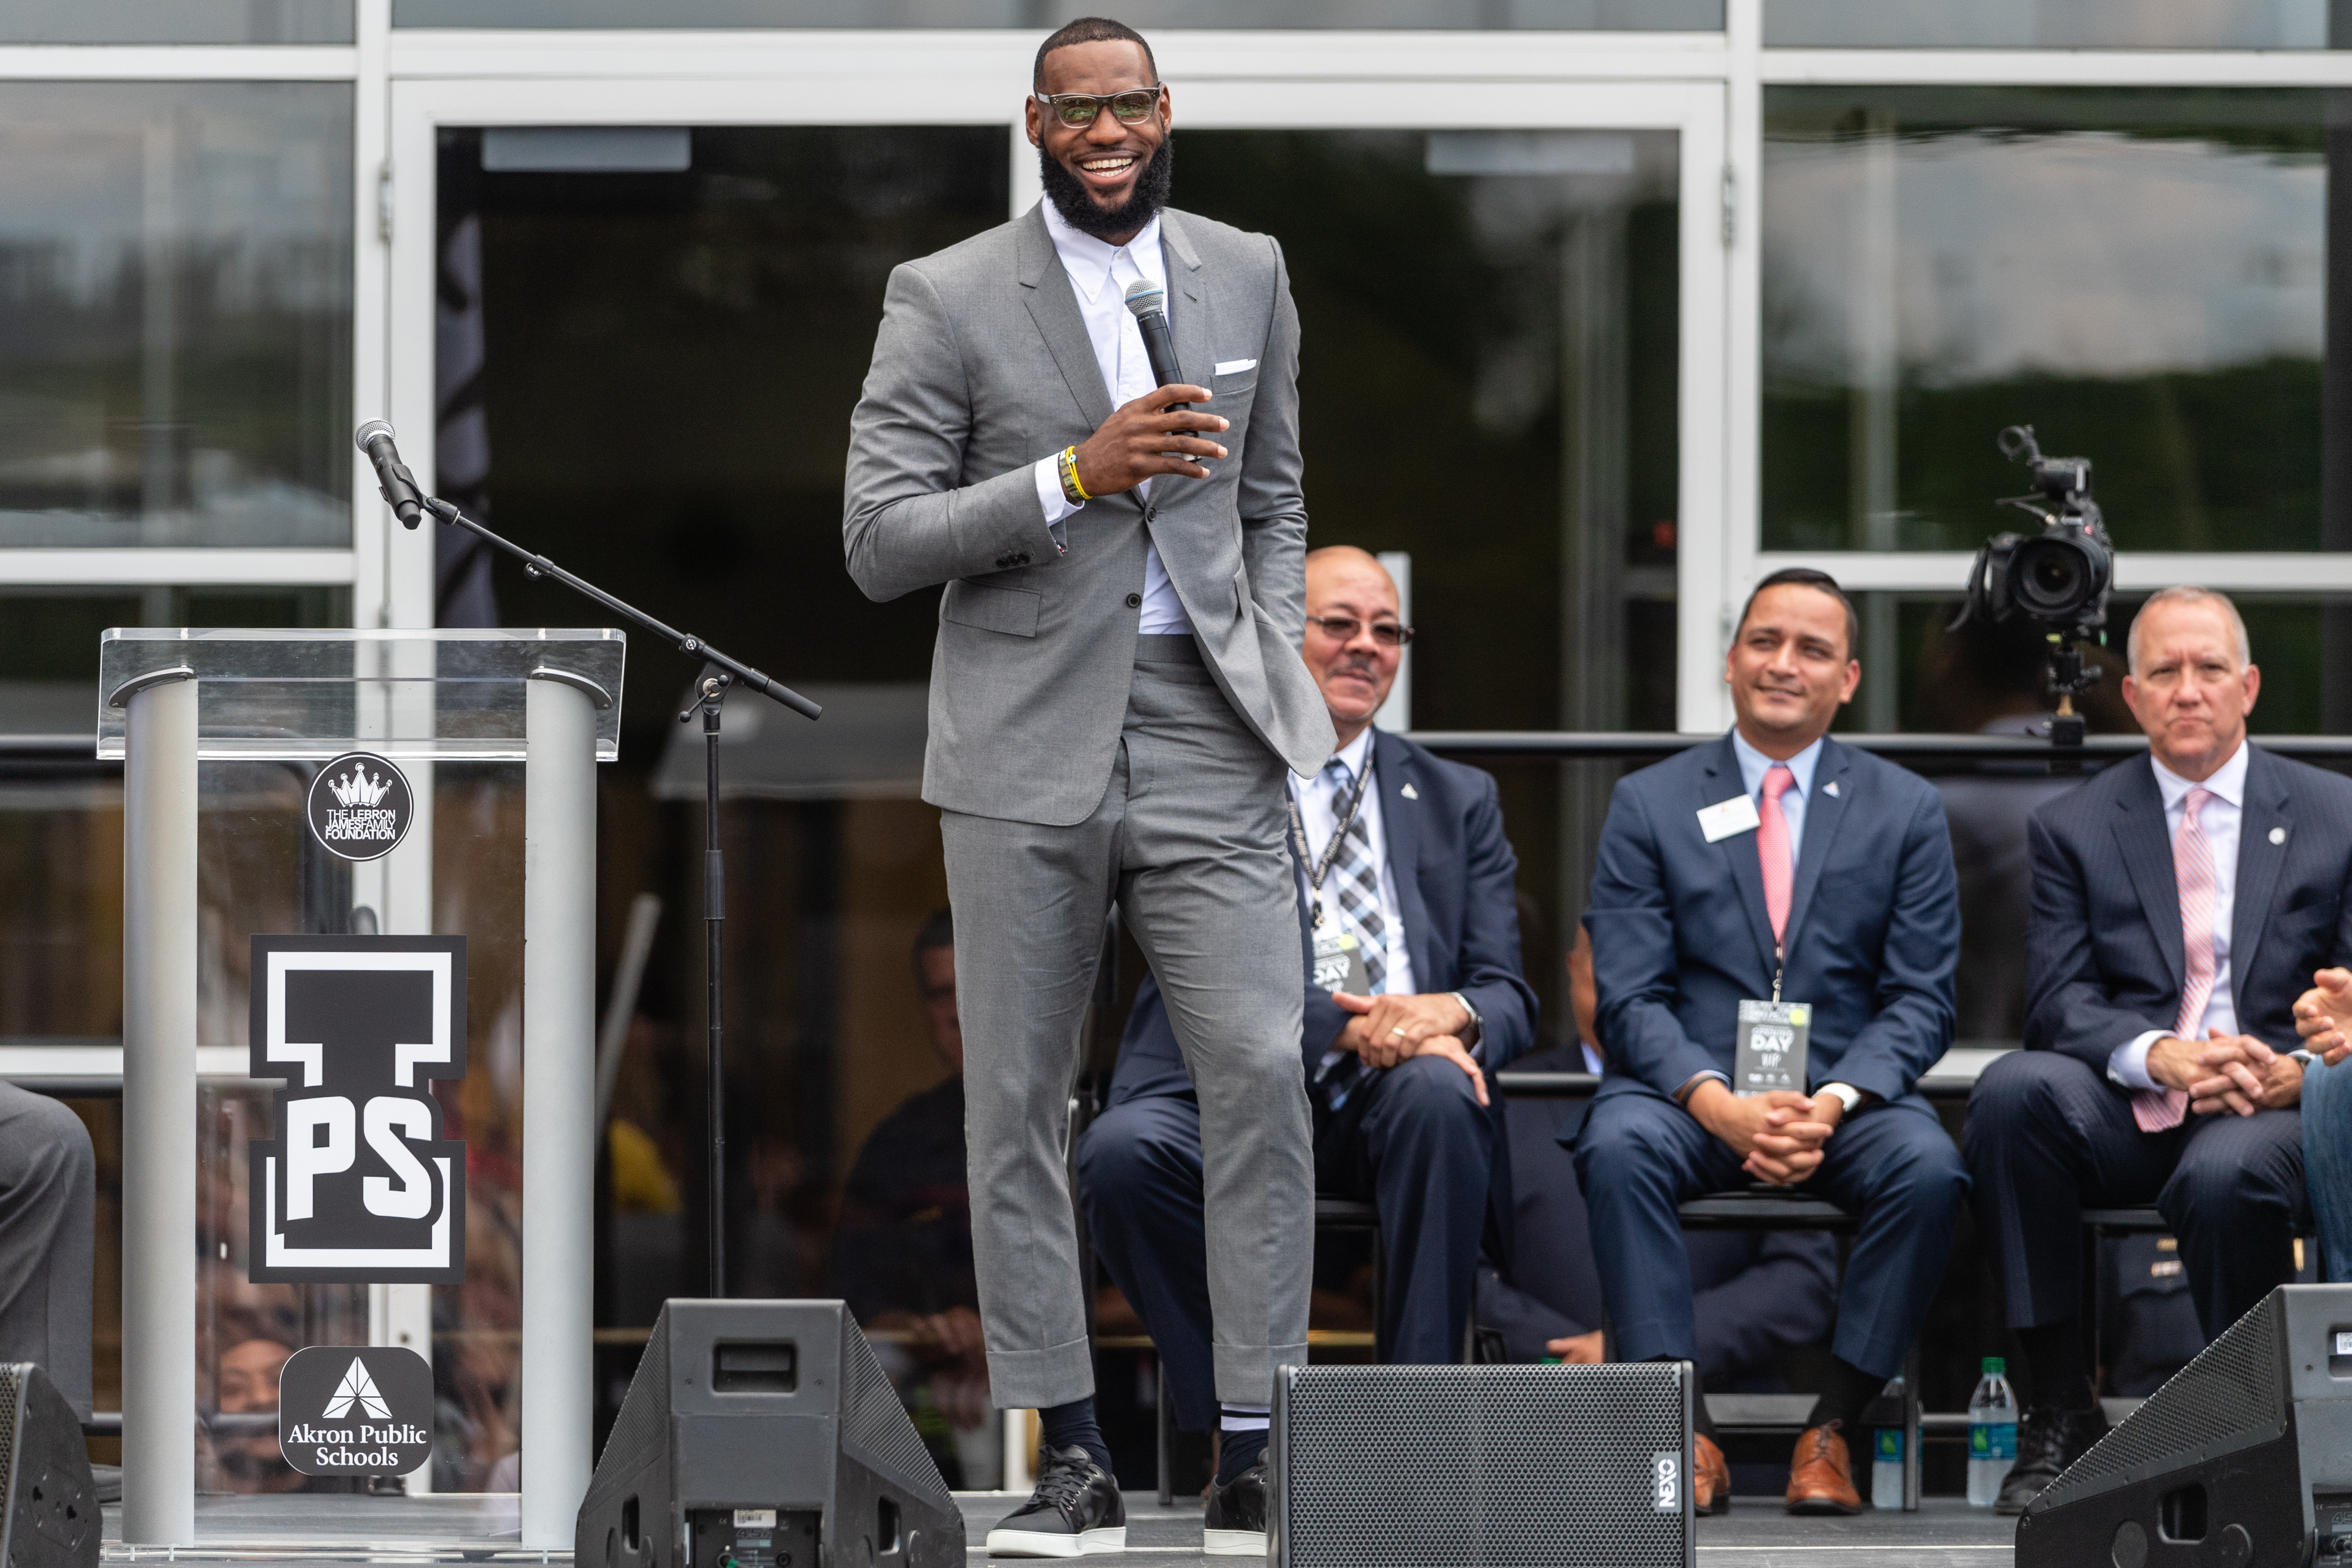 LeBron James addresses the crowd during the opening ceremonies of the I Promise School on July 30, 2018 in Akron, Ohio